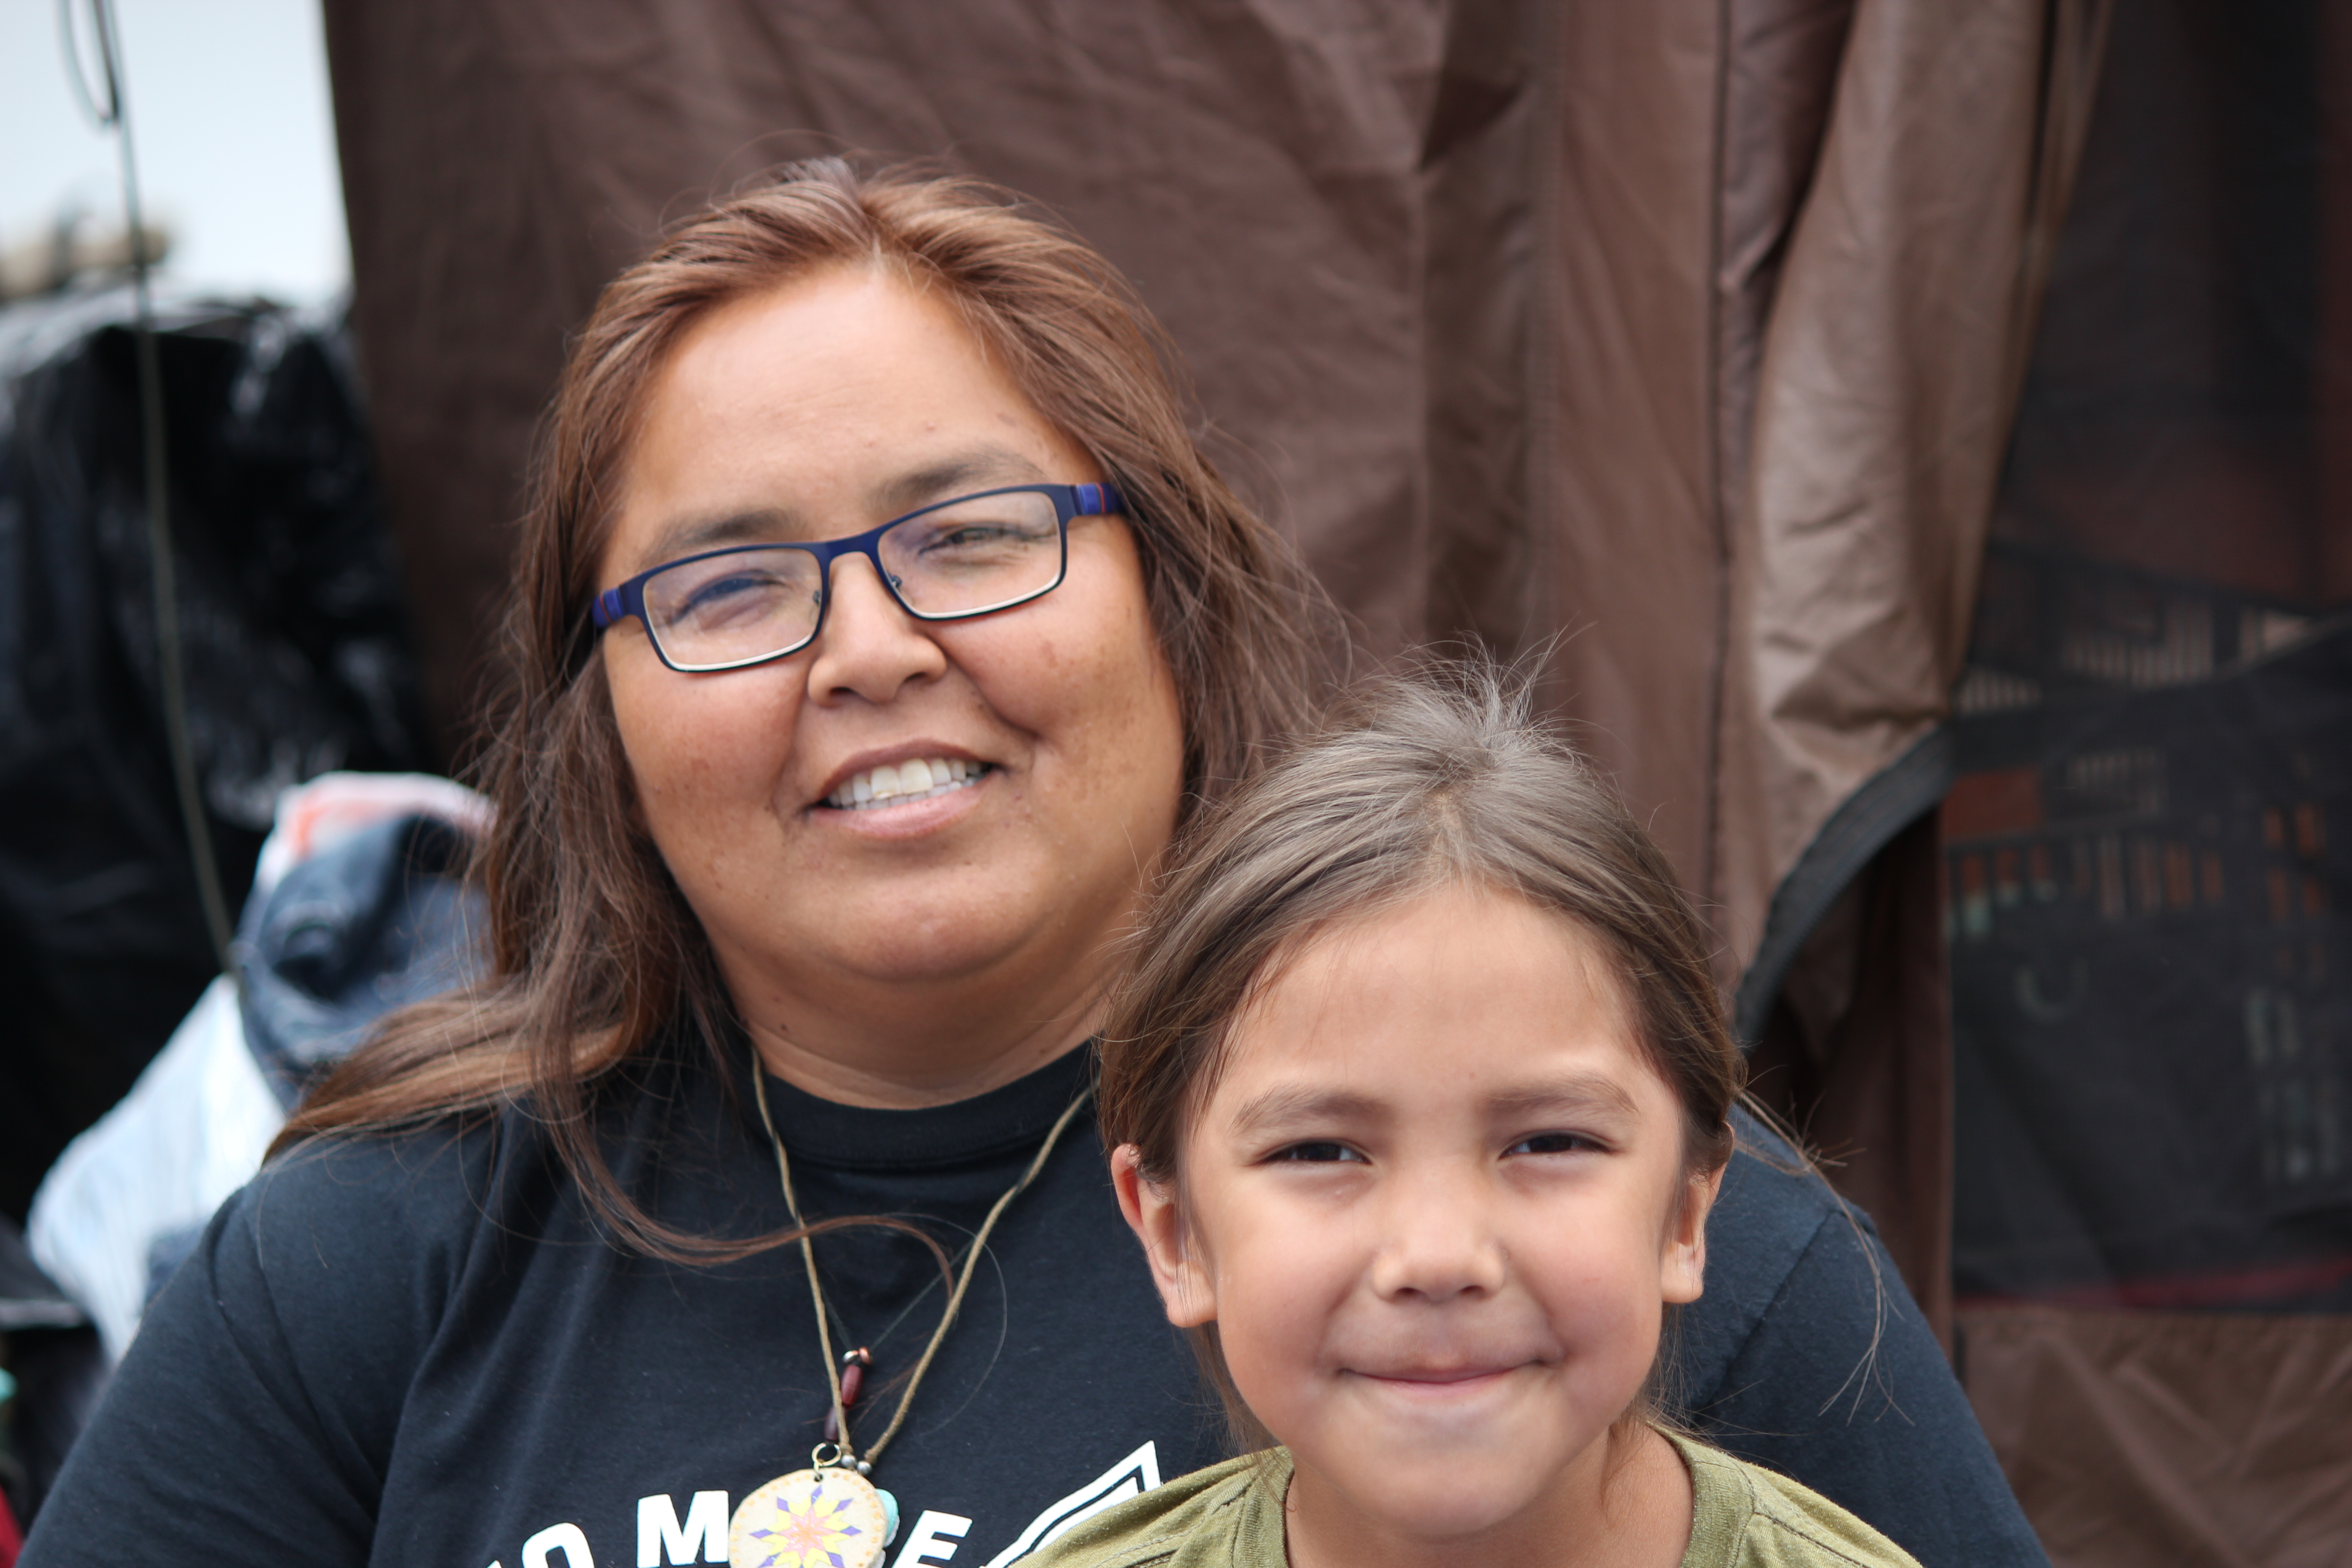 Joely Big Eagle-Kequahtooway and her son at the Sacred Stone Camp in North Dakota.